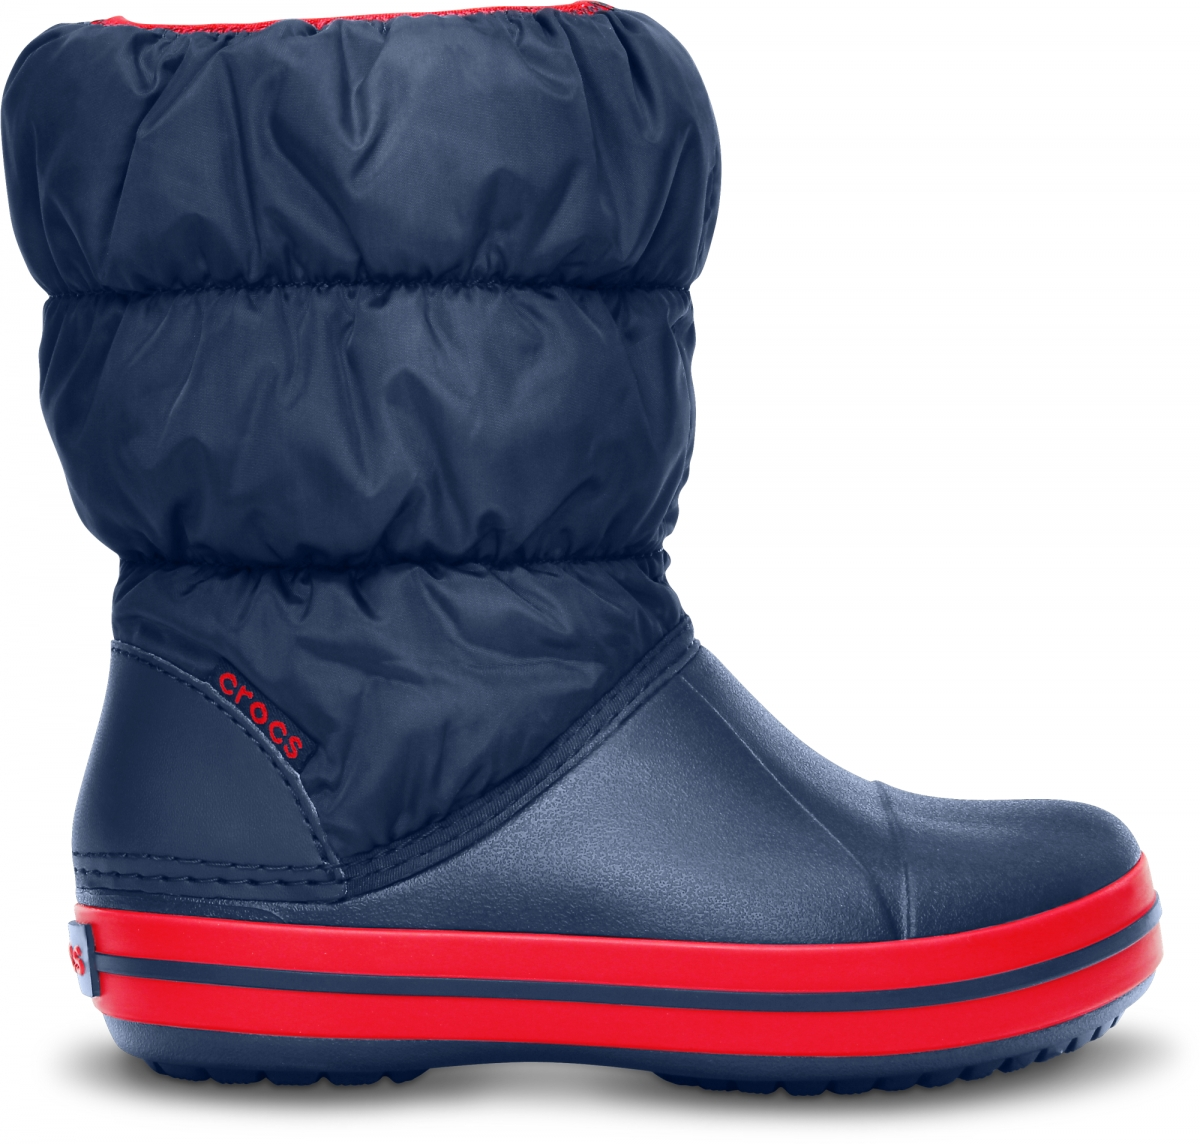 Crocs Winter Puff Boot Kids - Navy/Red, J2 (33-34)